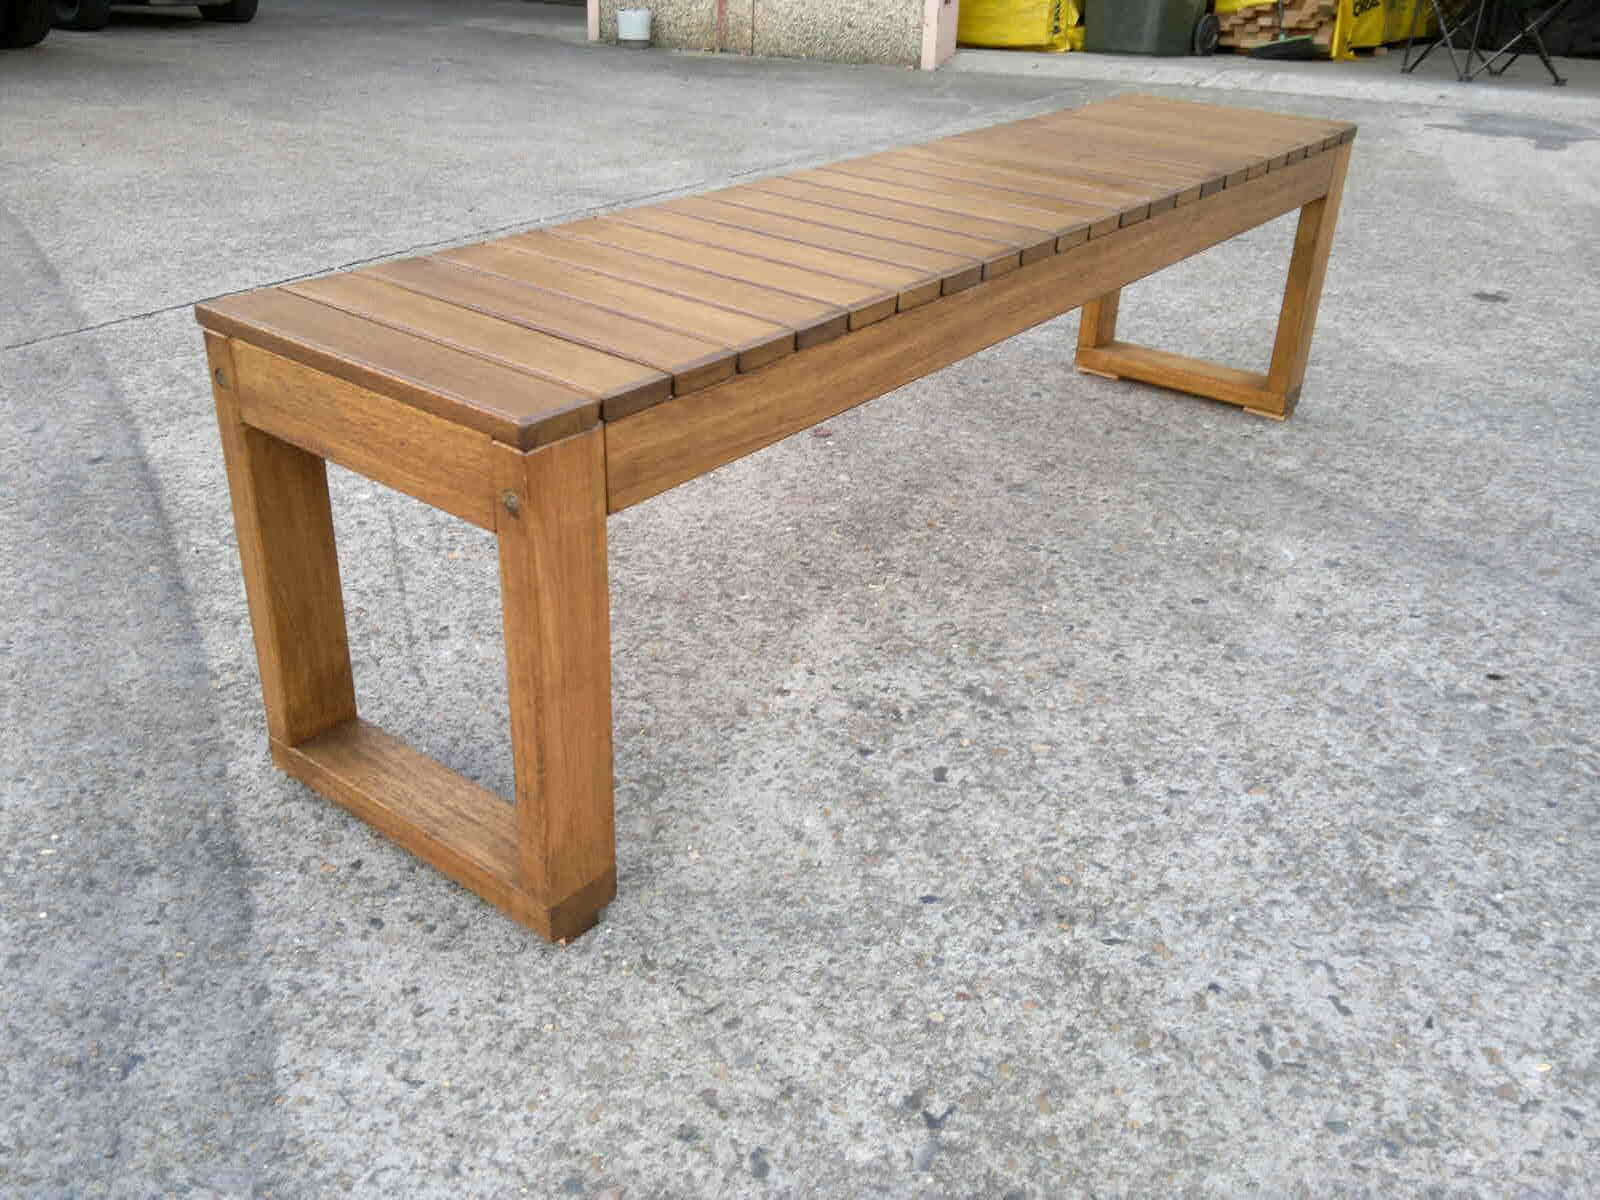 Image result for DIY bench seat Wood bench outdoor